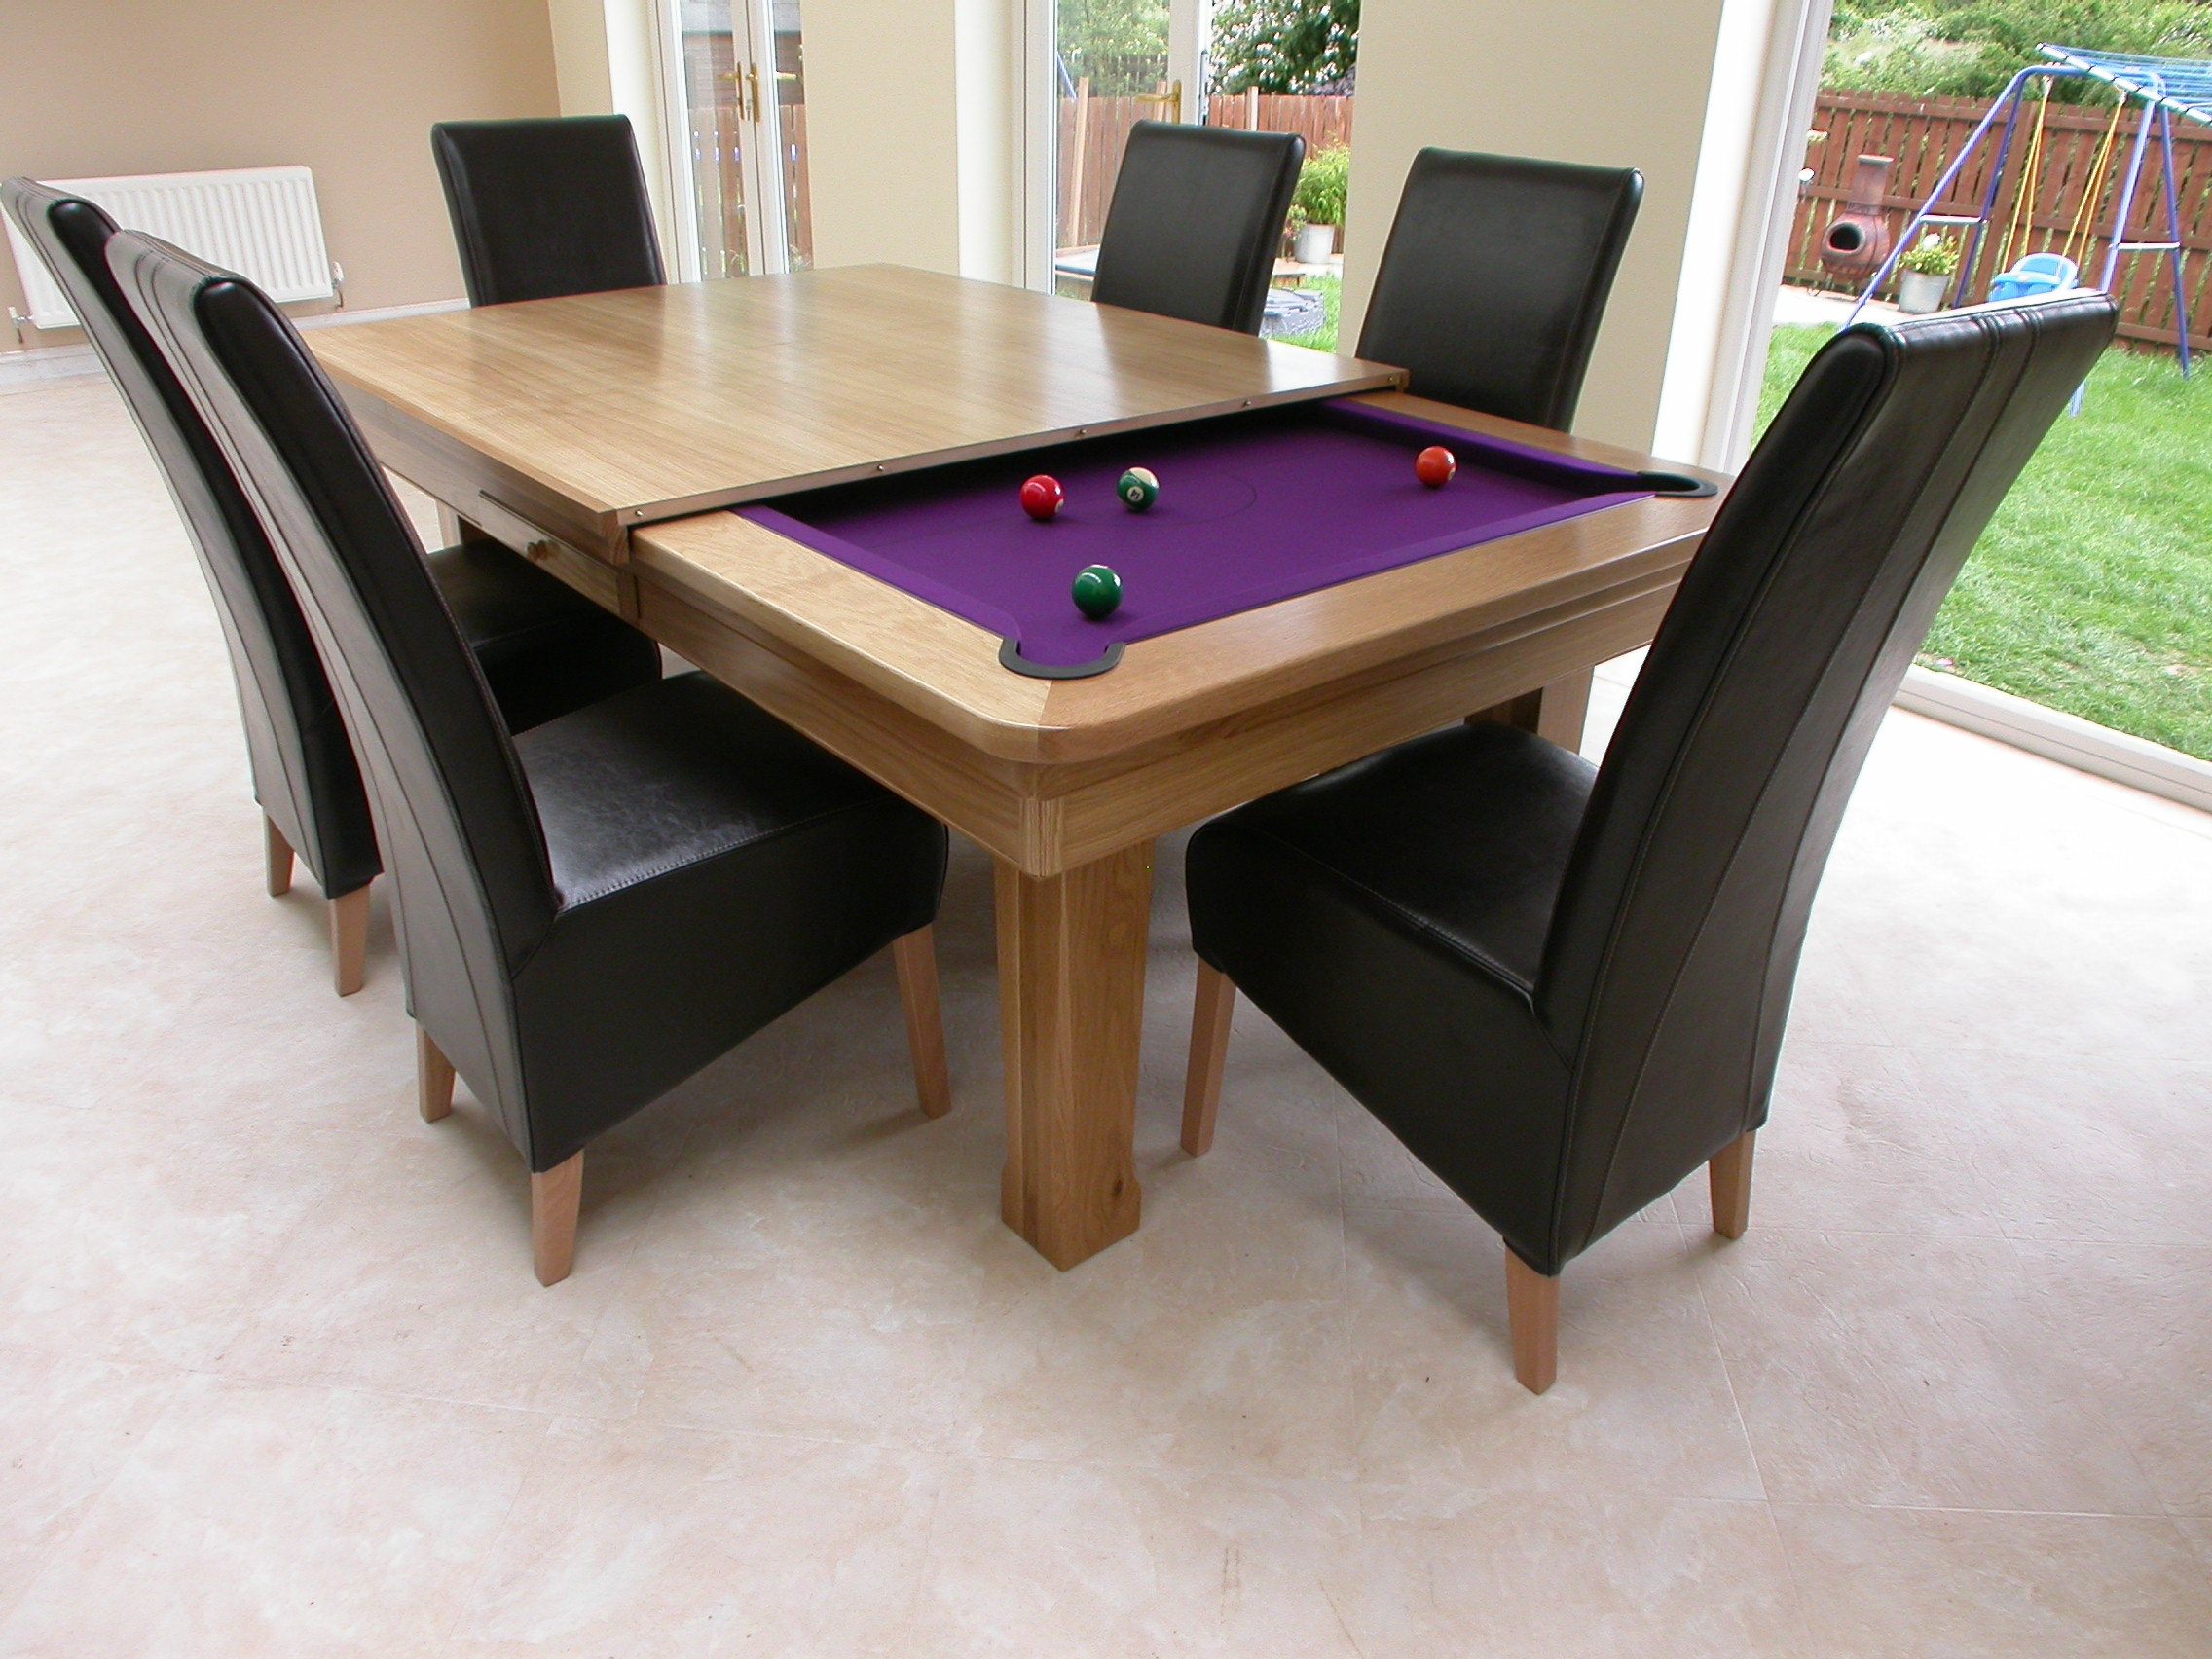 Red ball pool snooker furniture shops in darlington click2find th - Acheter billard table ...